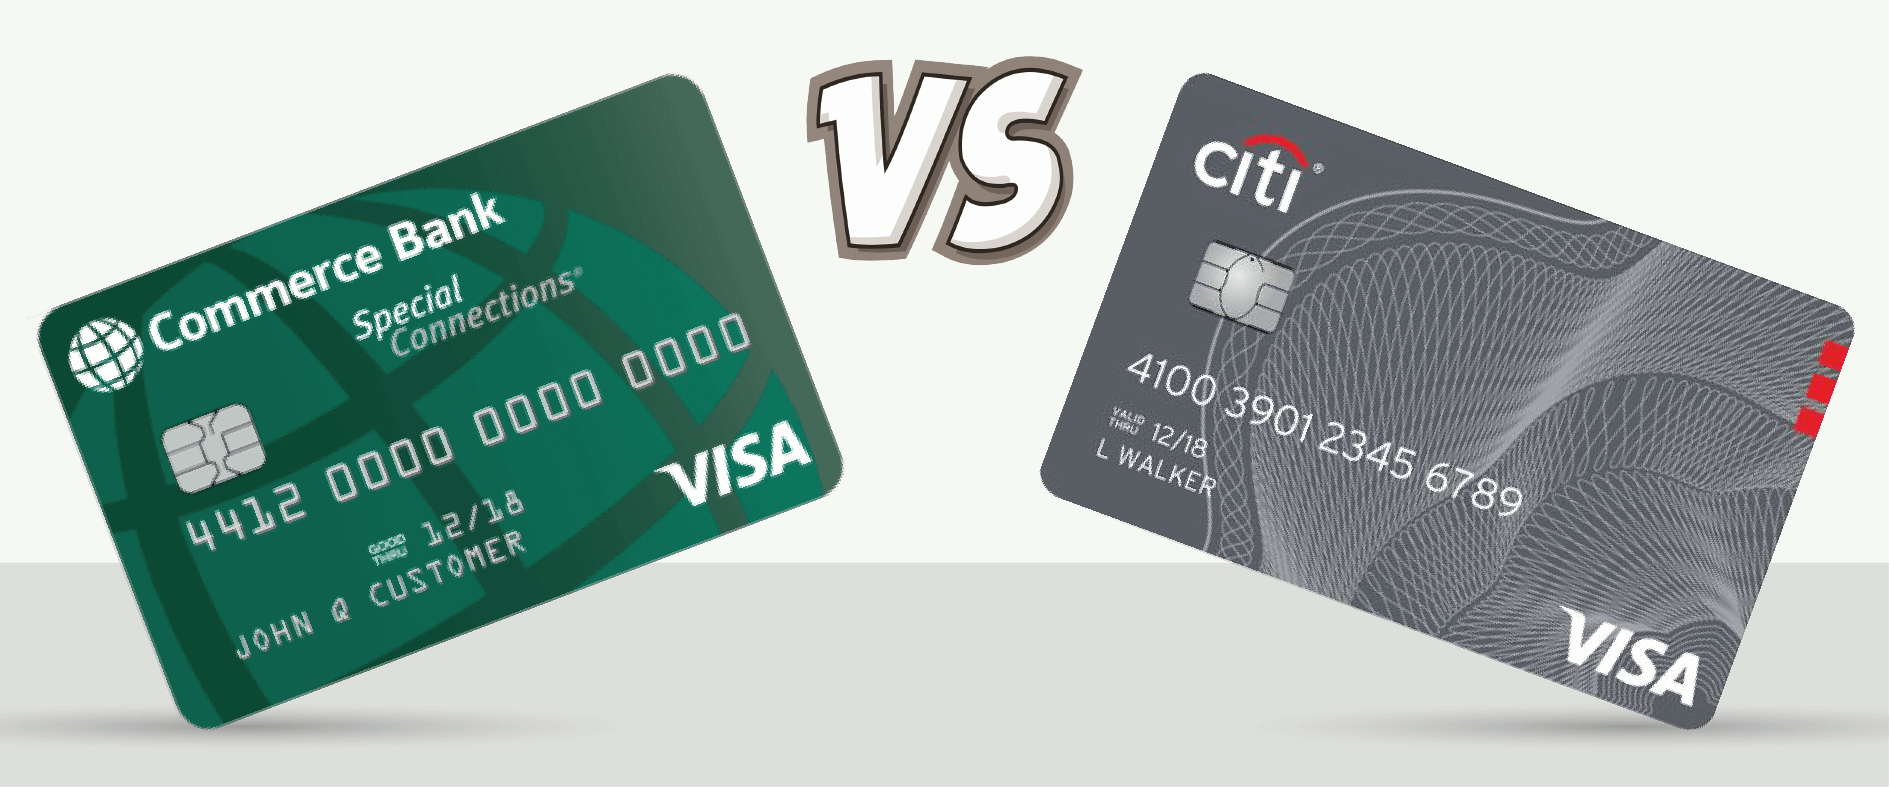 Commerce Bank 1.5% Cash Back Rewards Card vs. Costco ...